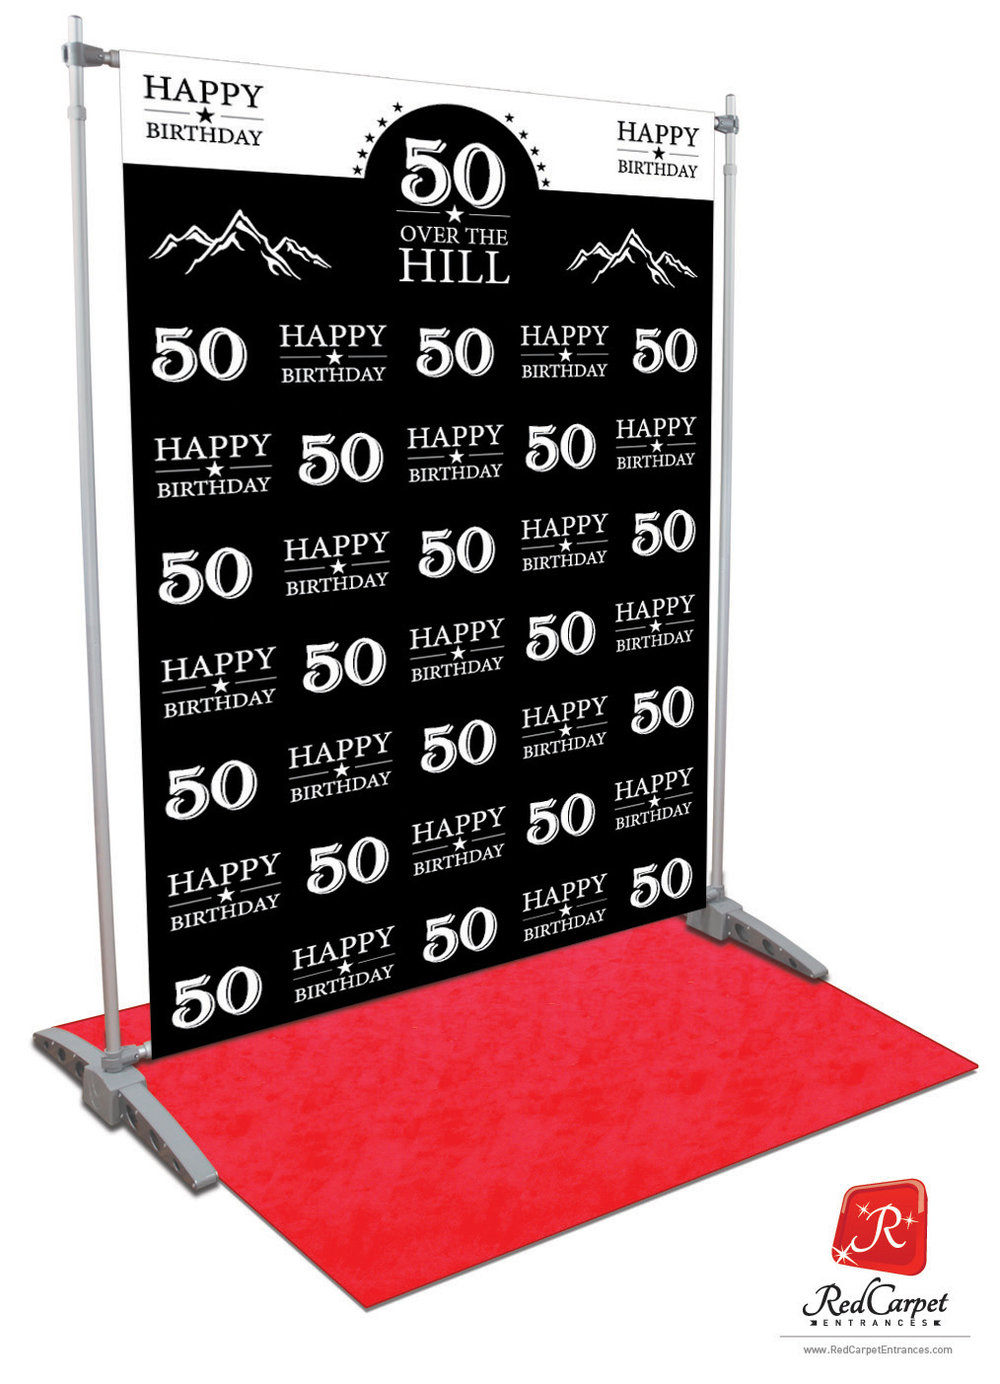 Over The Hill 50th Birthday Backdrop Black 5x8 Red